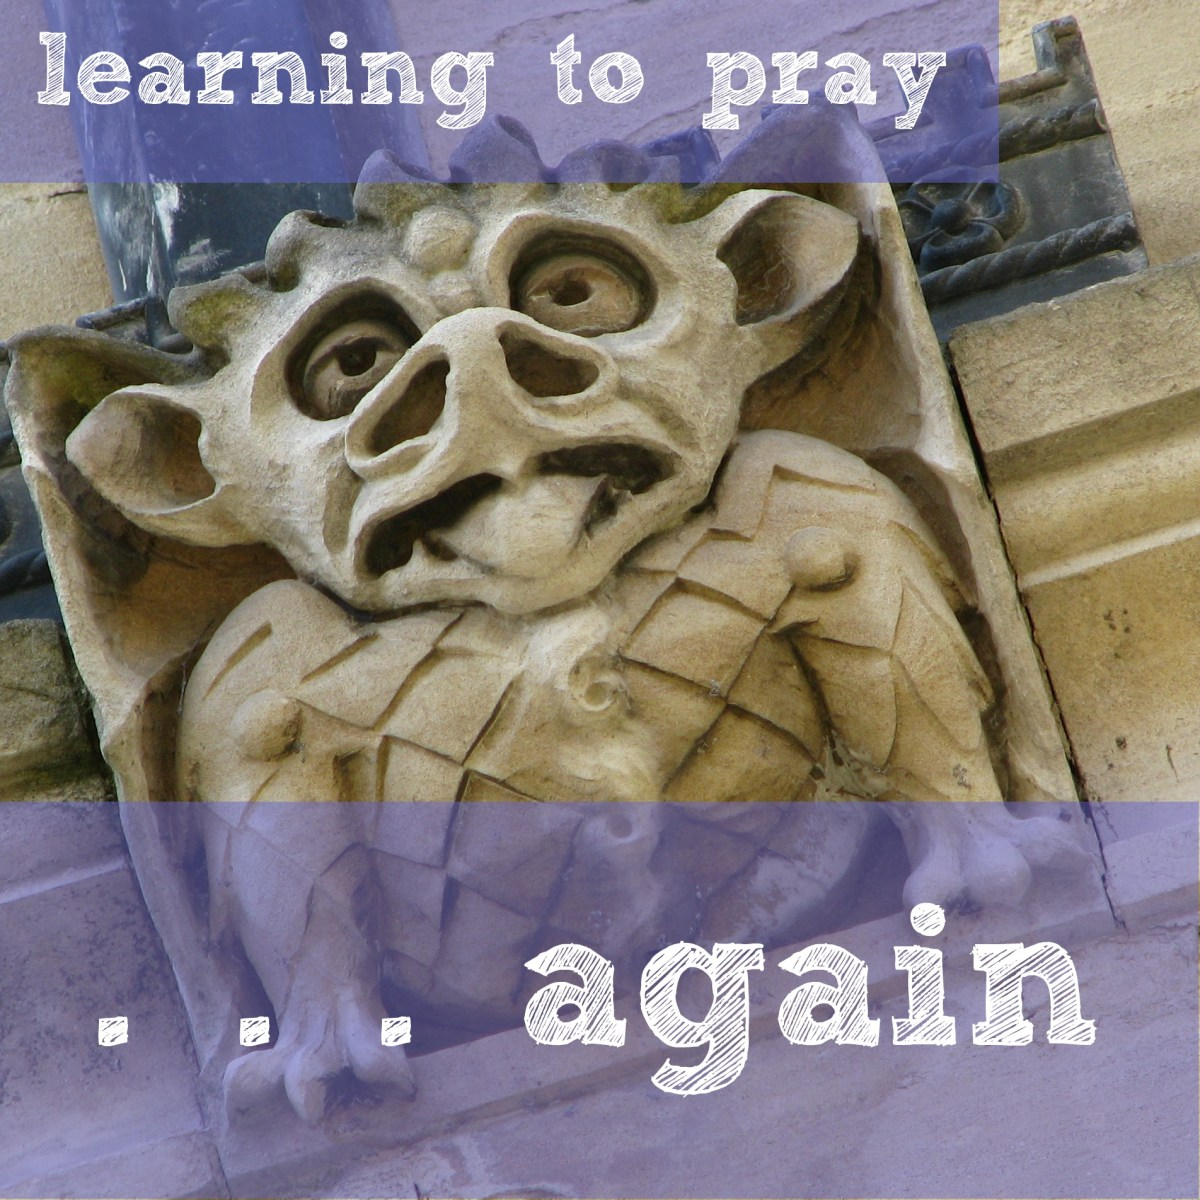 Learning to pray, again